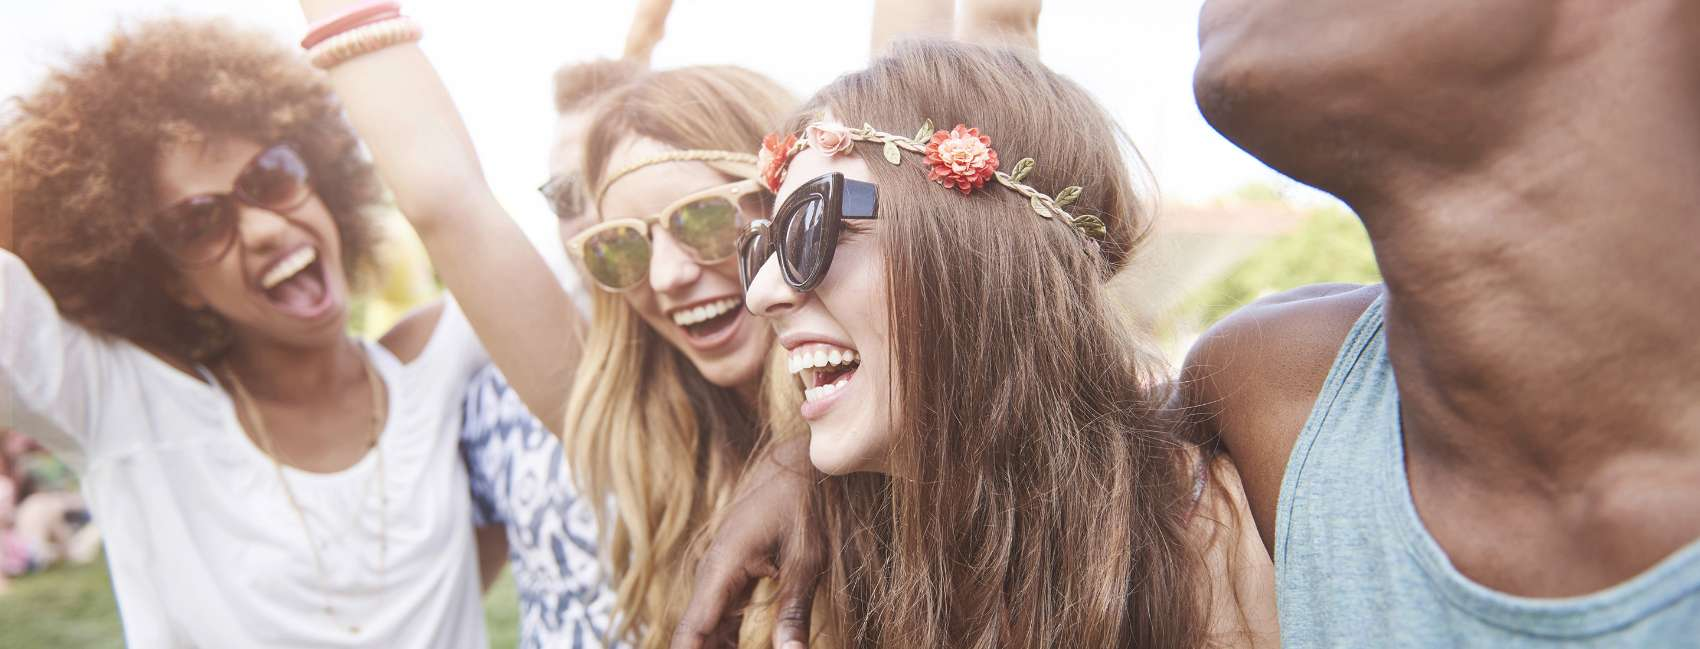 Three smiling girls wearing sunglasses in a festival setting